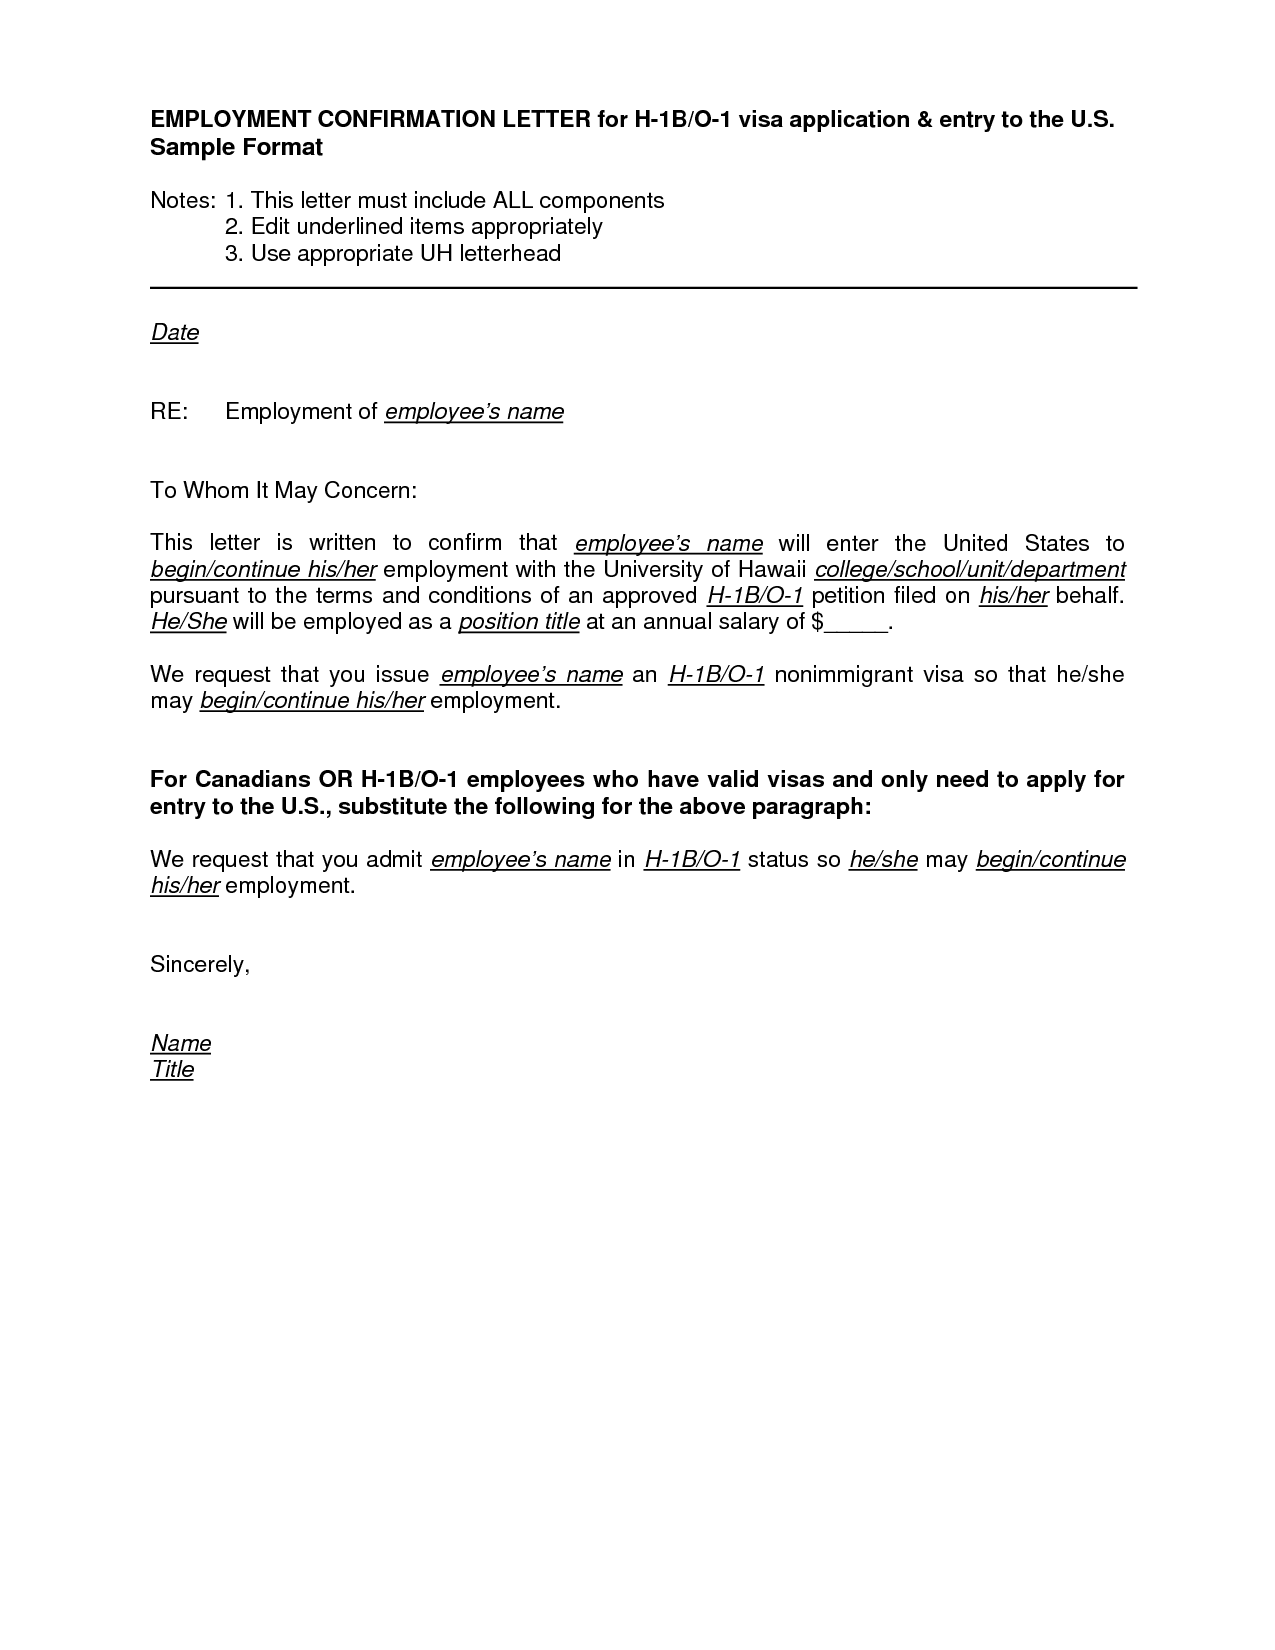 Job letter sample from employer letter of employment sample template altavistaventures Gallery